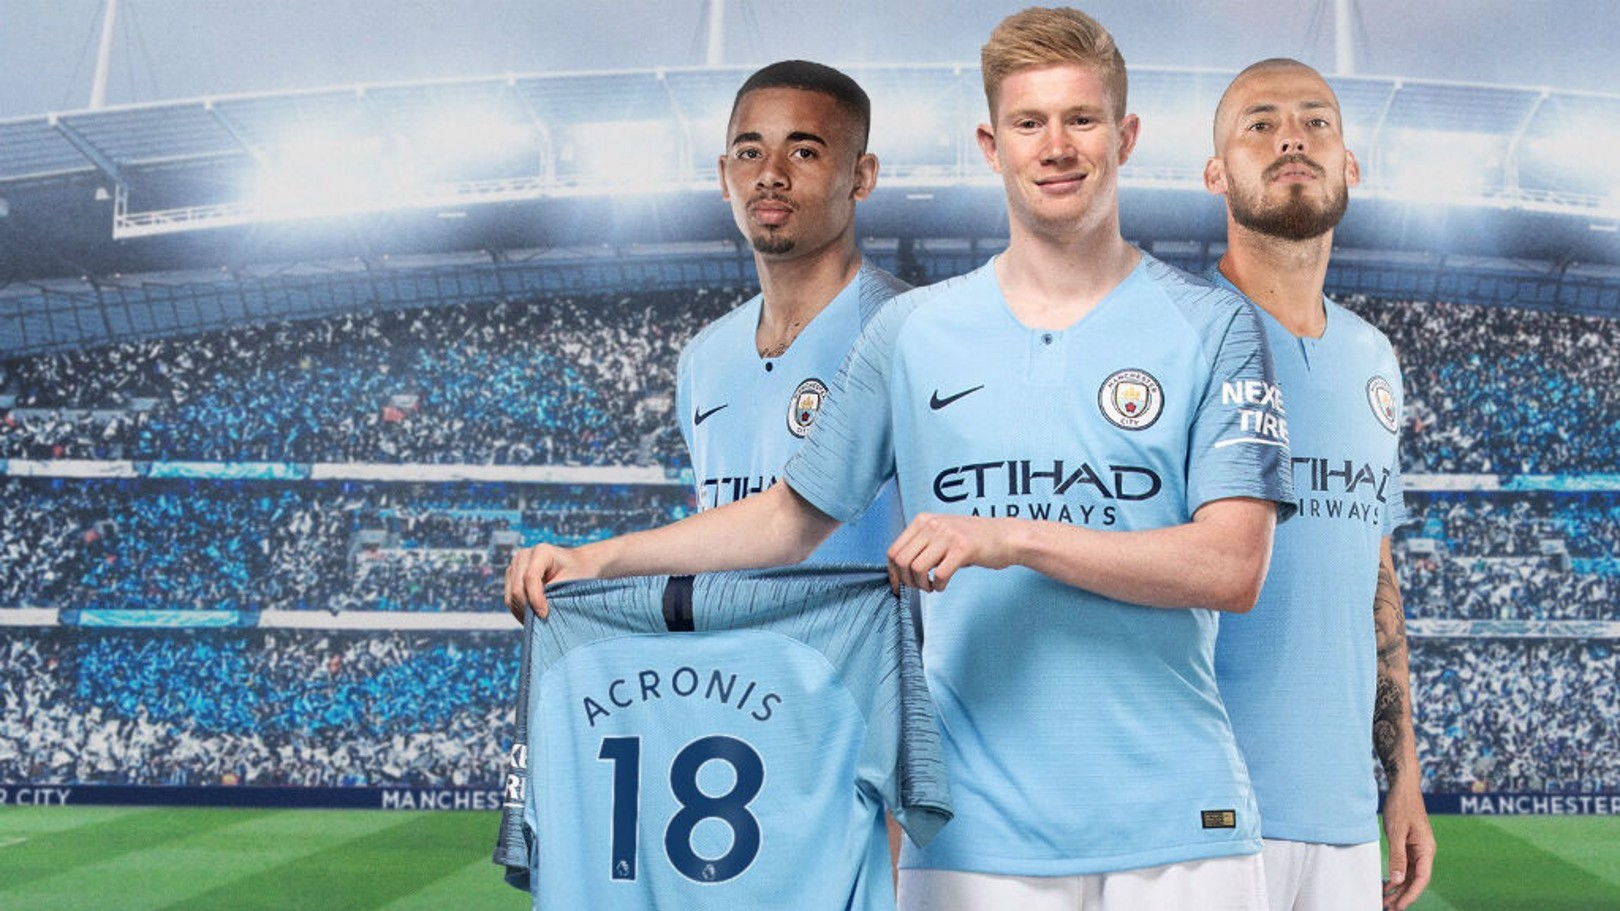 Man City secures global partnership with Acronis